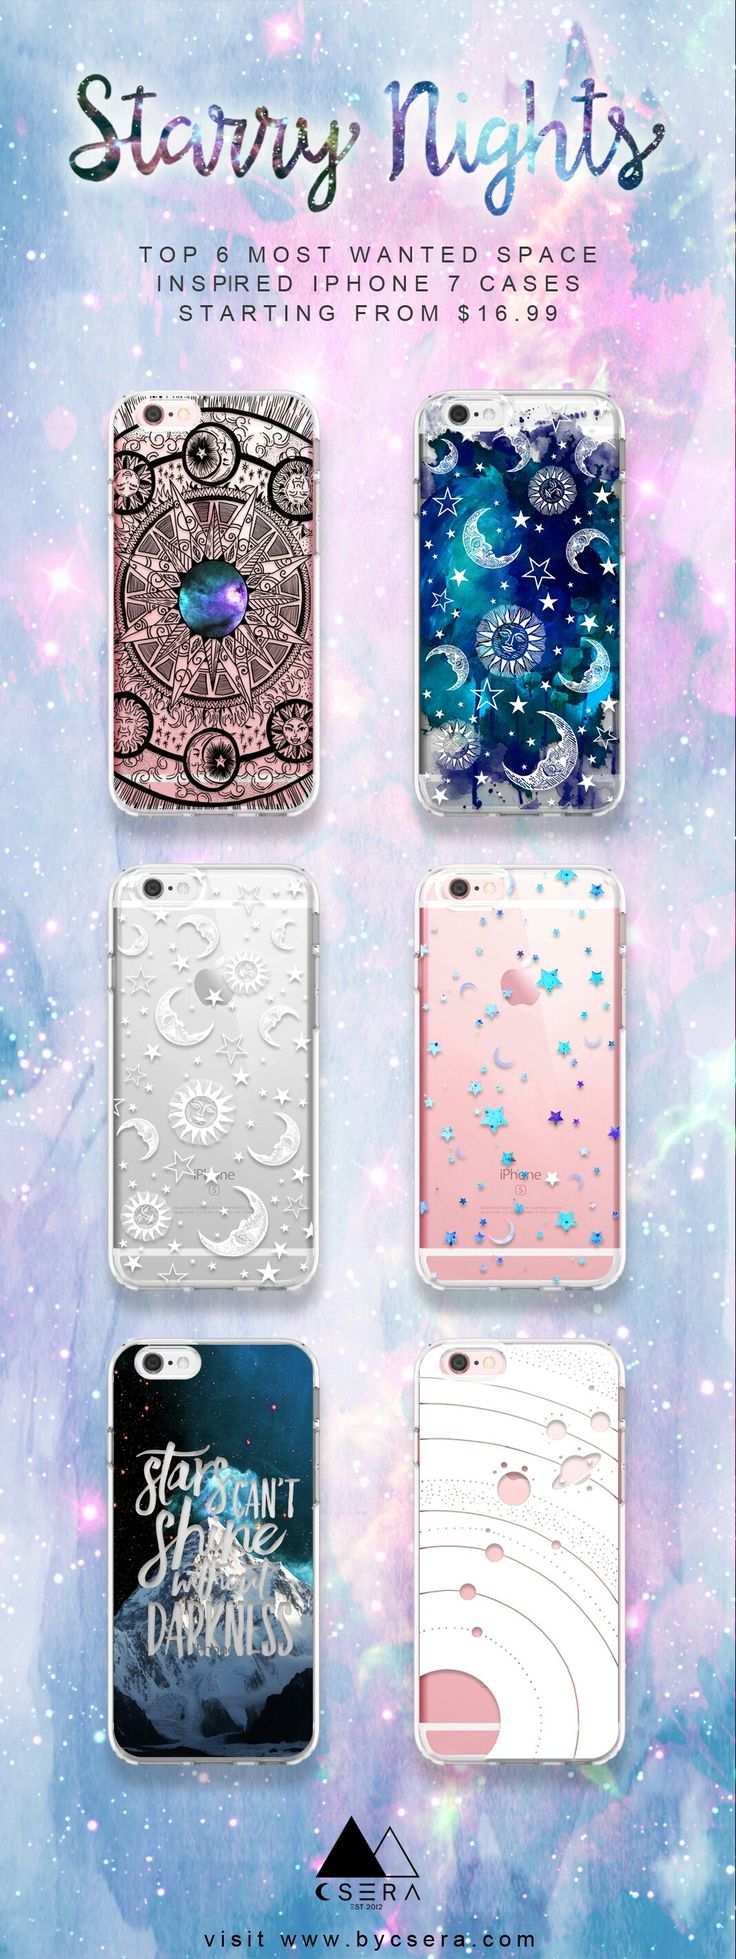 Top 6 Most Wanted Space Inspired iPhone 7 Cases Starting From $16.99 Visit www.bycsera.com